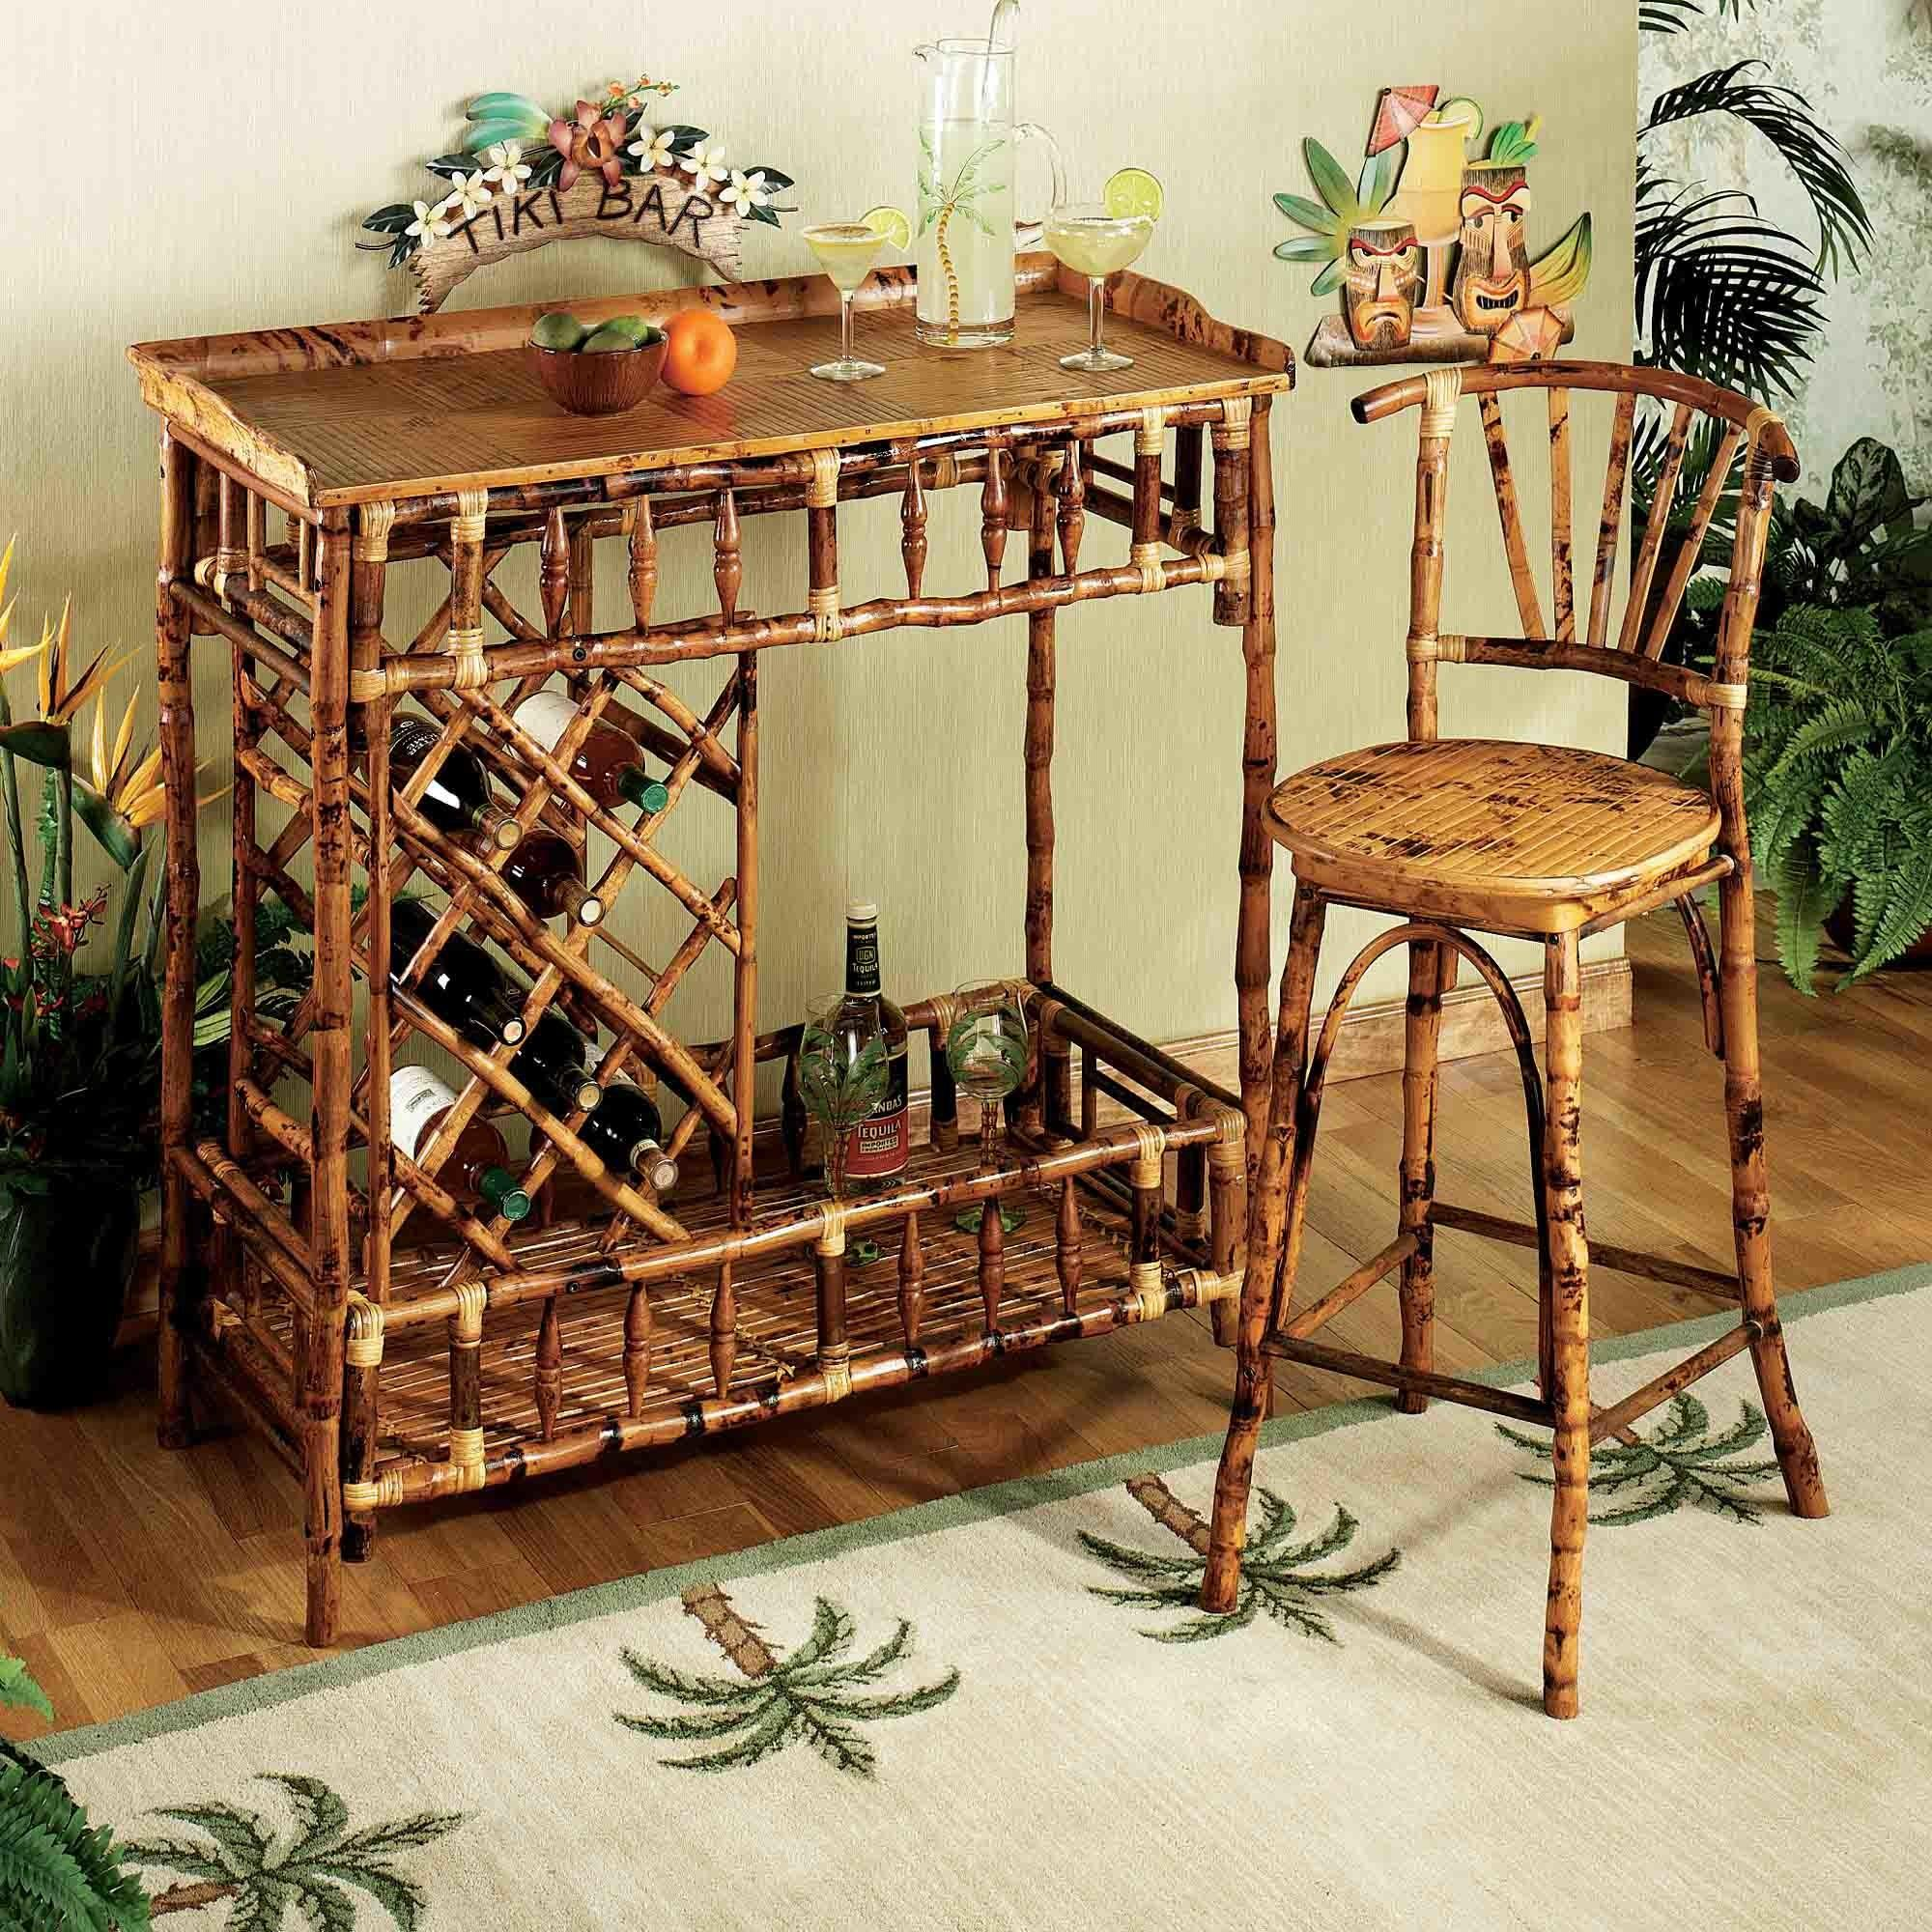 Bamboo Rattan Furniture Suppliers Ccgoods